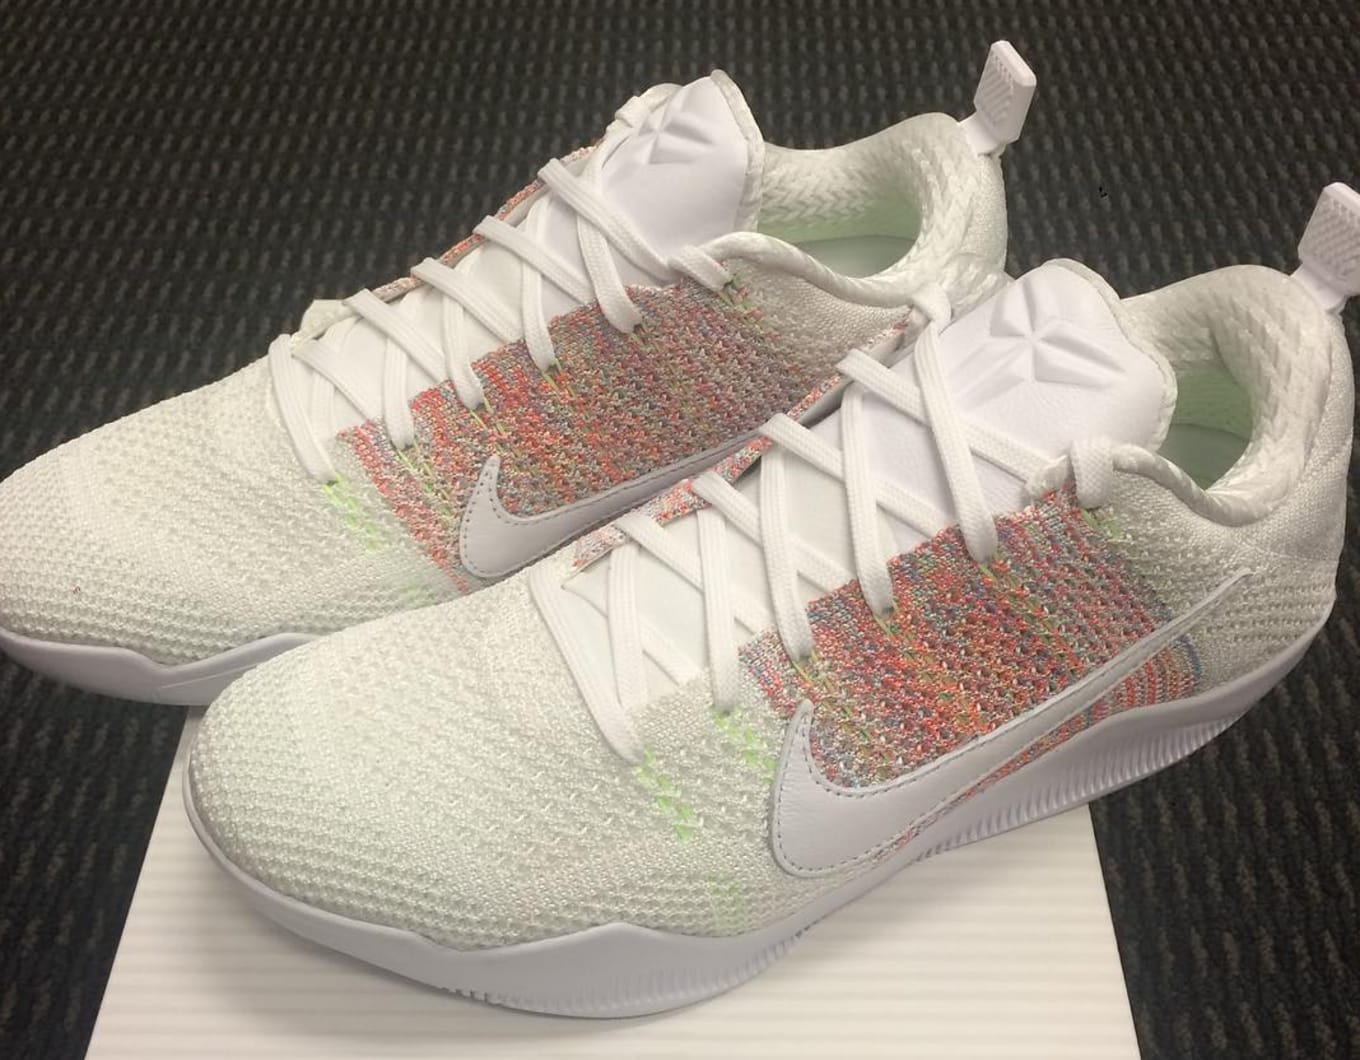 2a0e765301e9 Multicolor Flyknit Appears on Nike Kobe 11s. Could this be the Easter pair